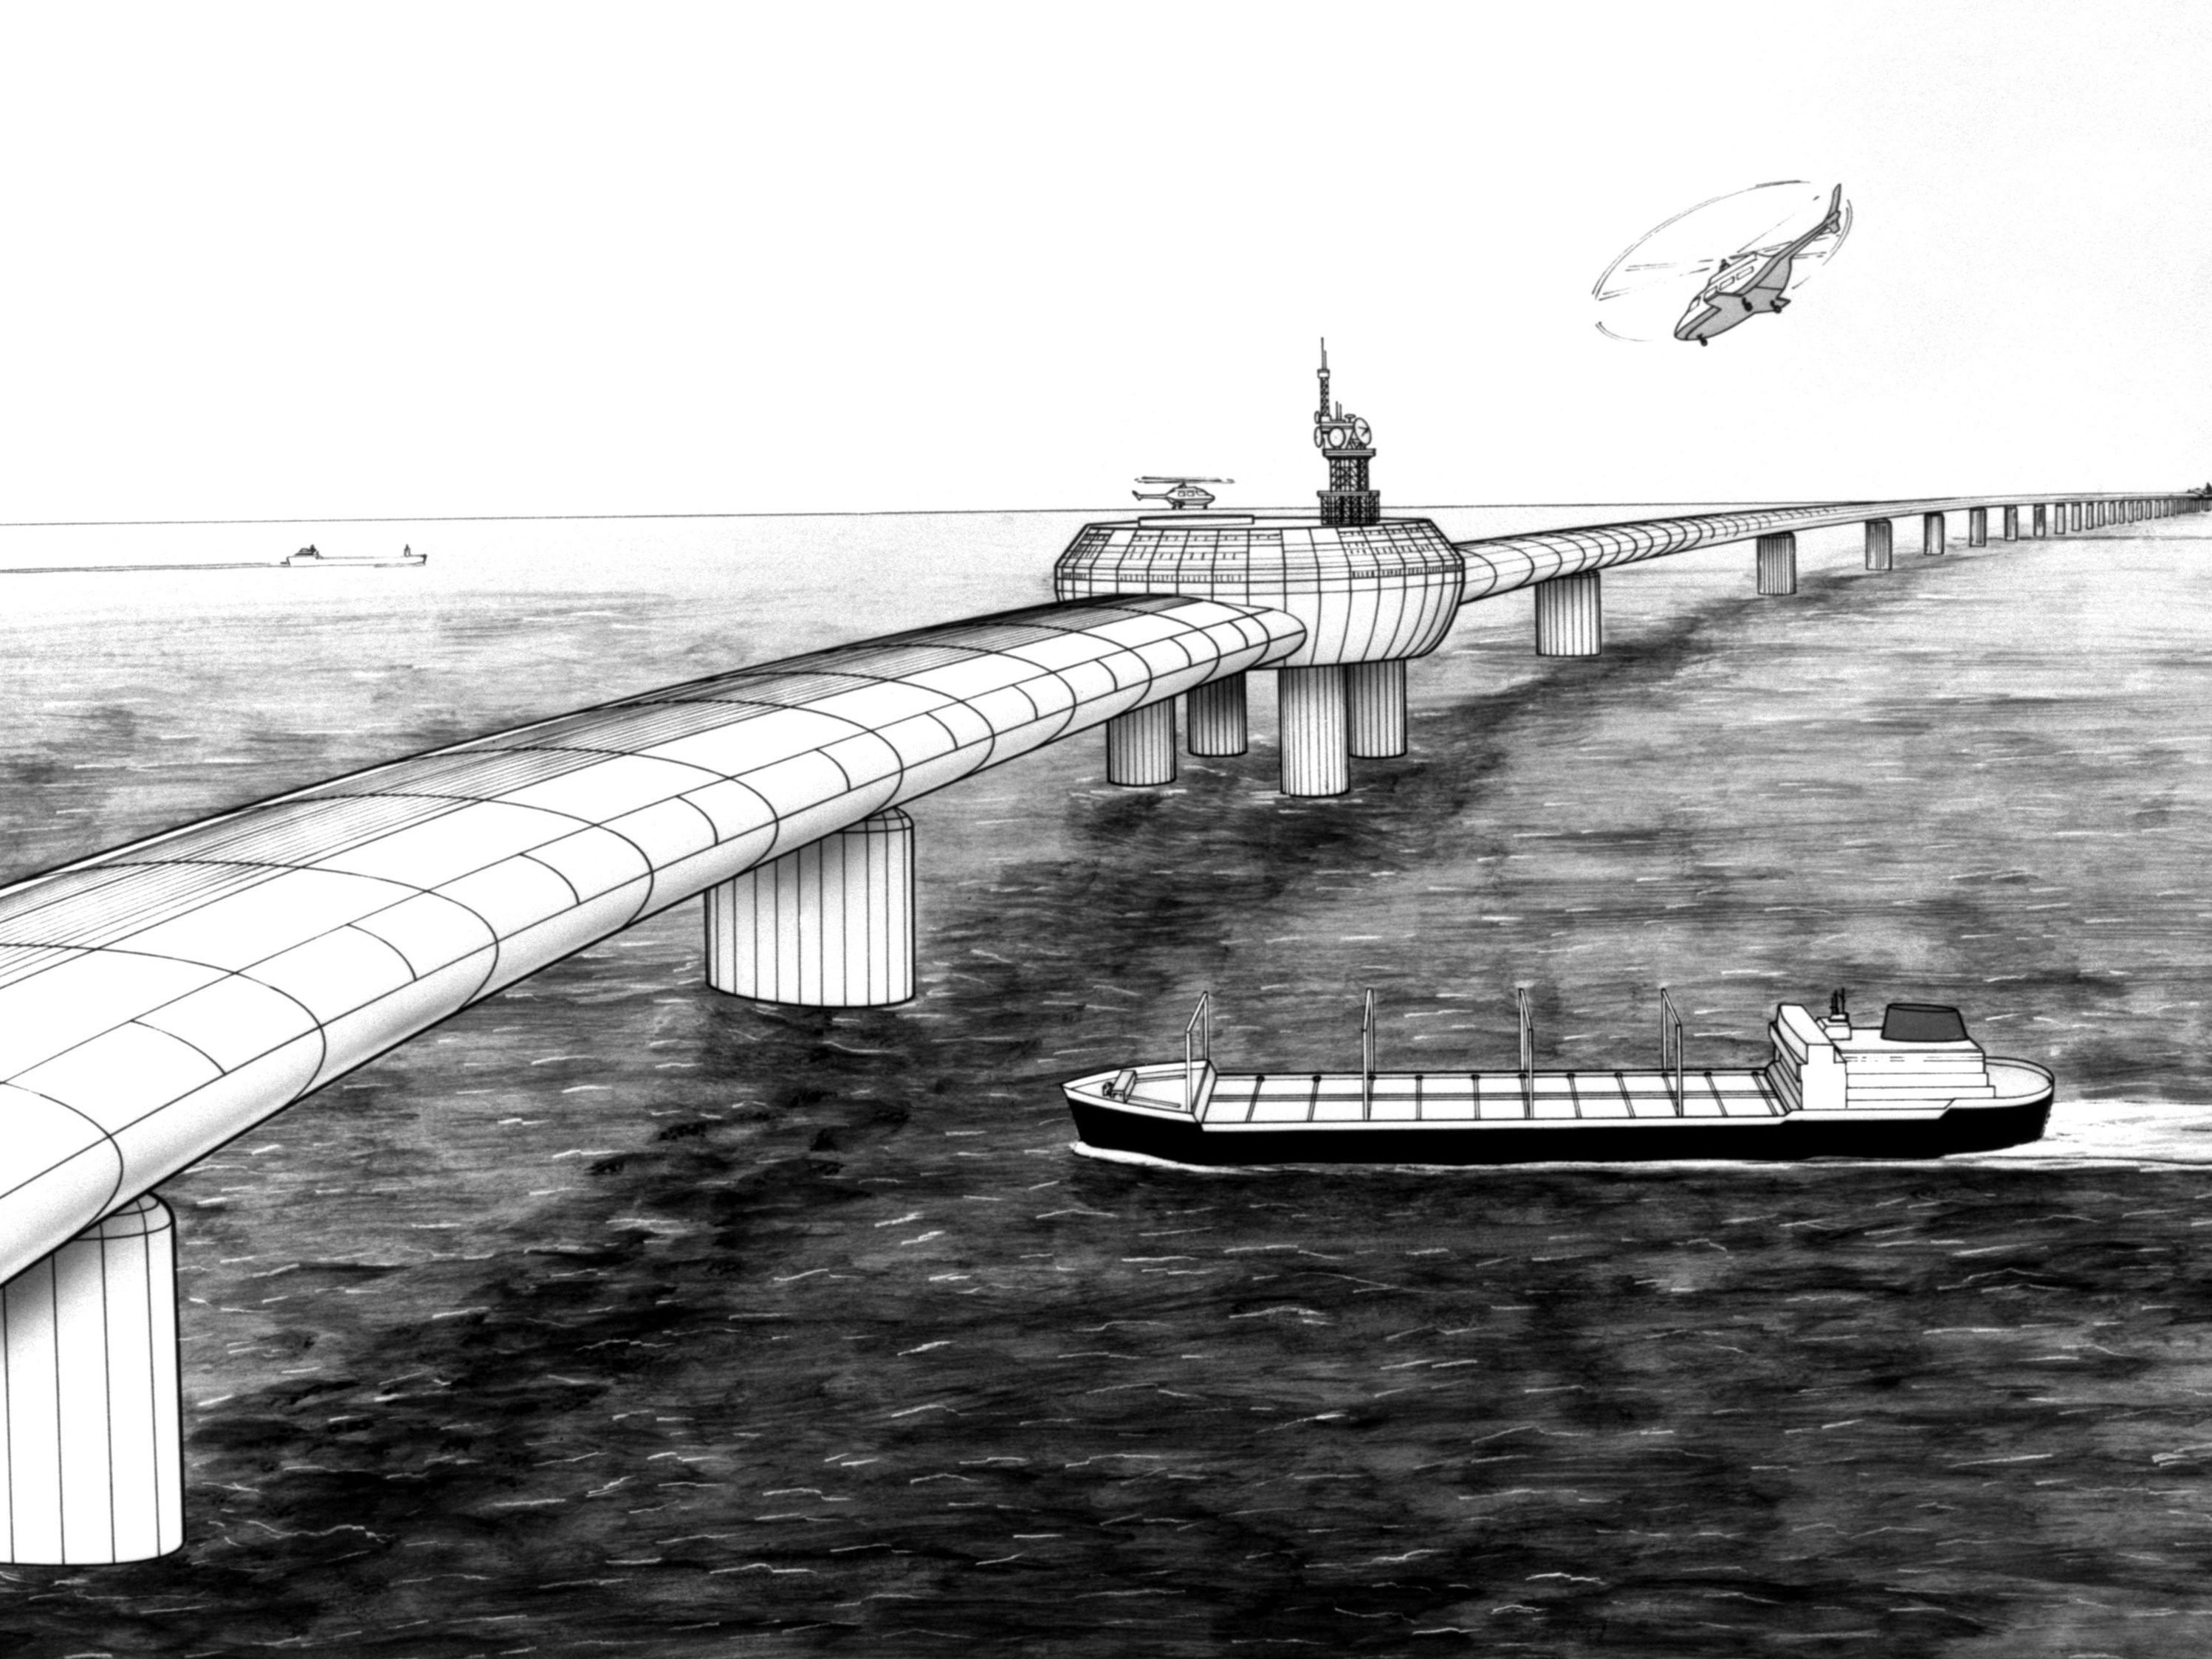 Artist's impression from 1985 of the Eurolink bridge, a plan by four London businessmen for a road/rail bridge across the Channel